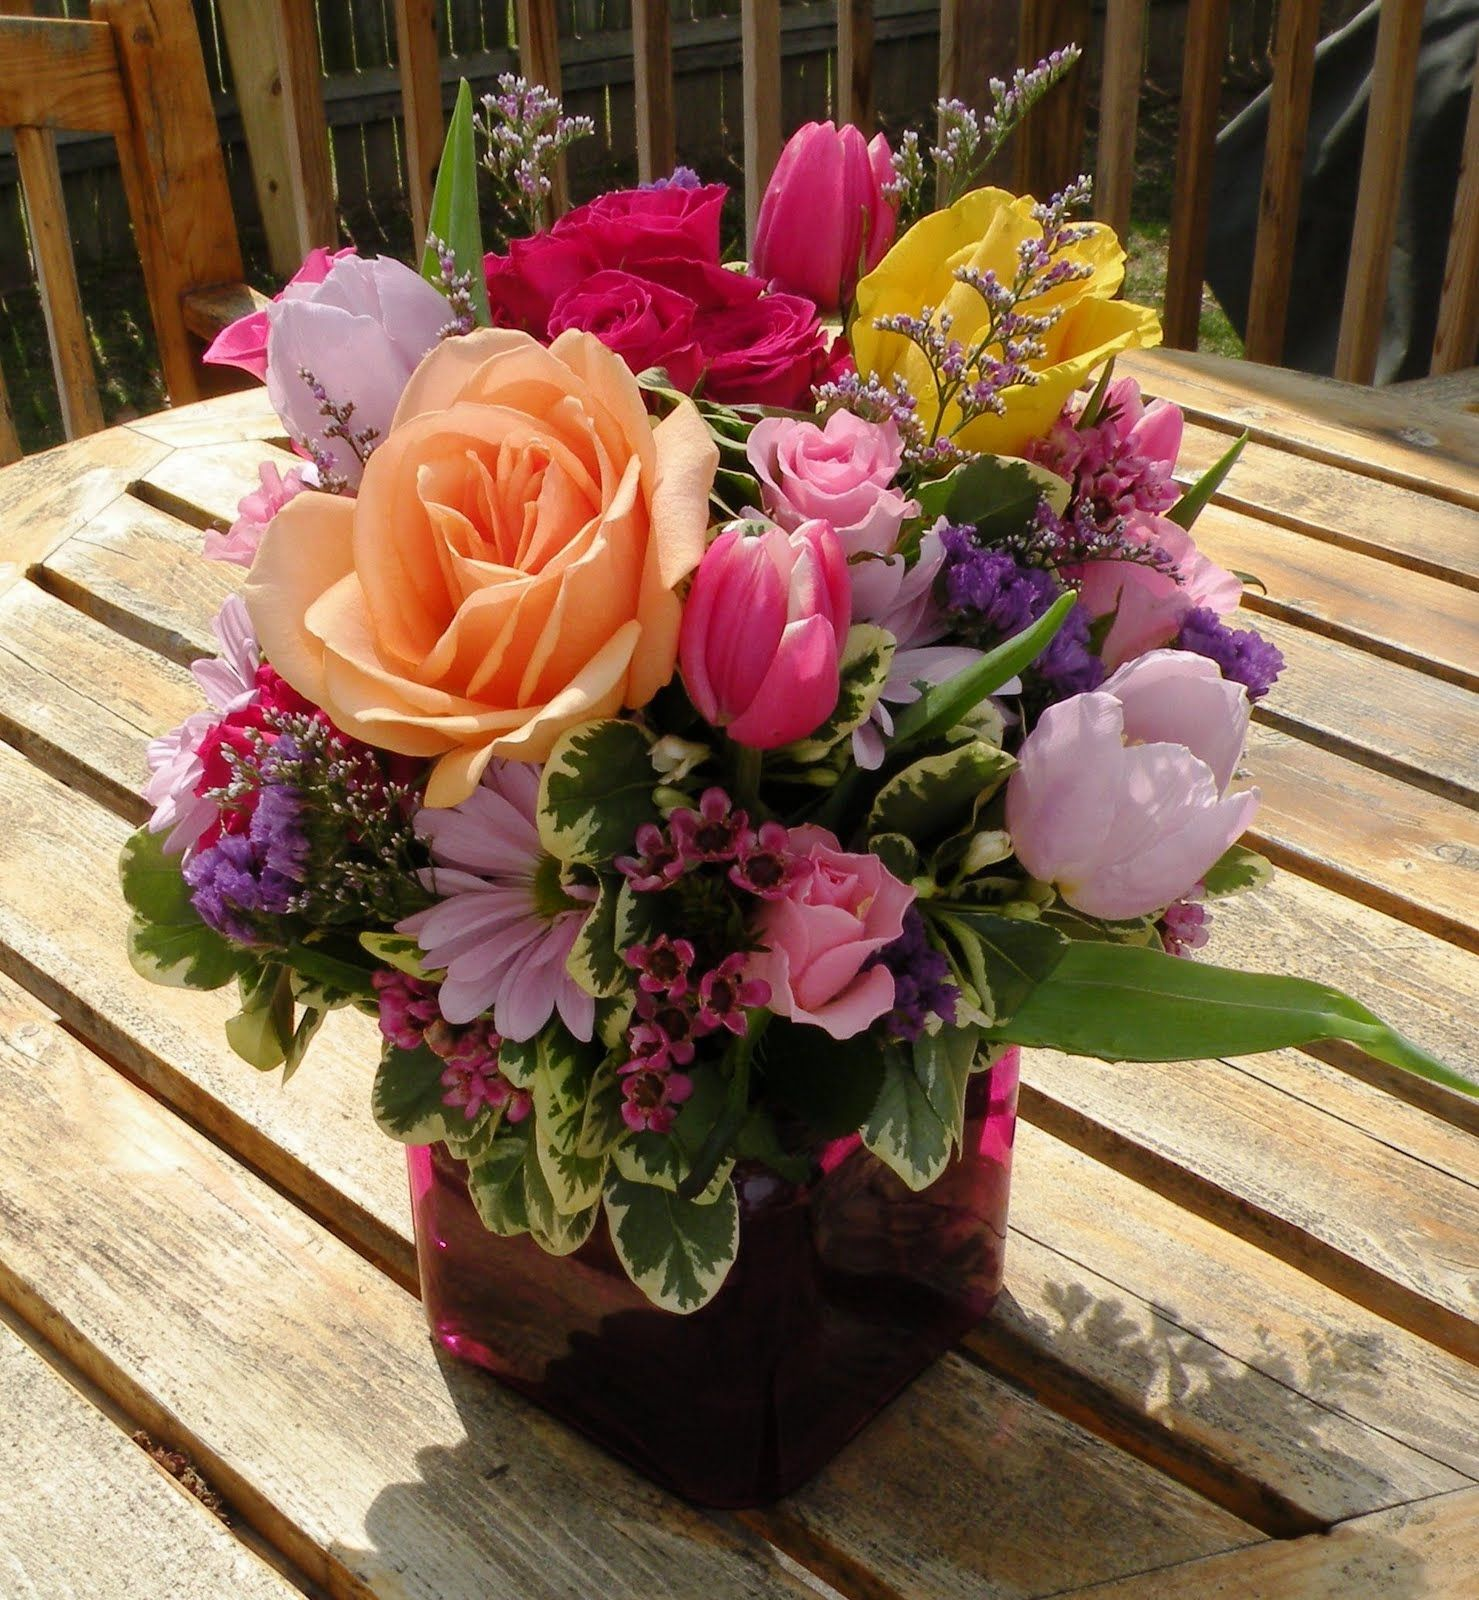 The Meaning of the 5th Wedding Anniversary Flower Anniversary flowers, 50 wedding anniversary gifts, Wedding flowers